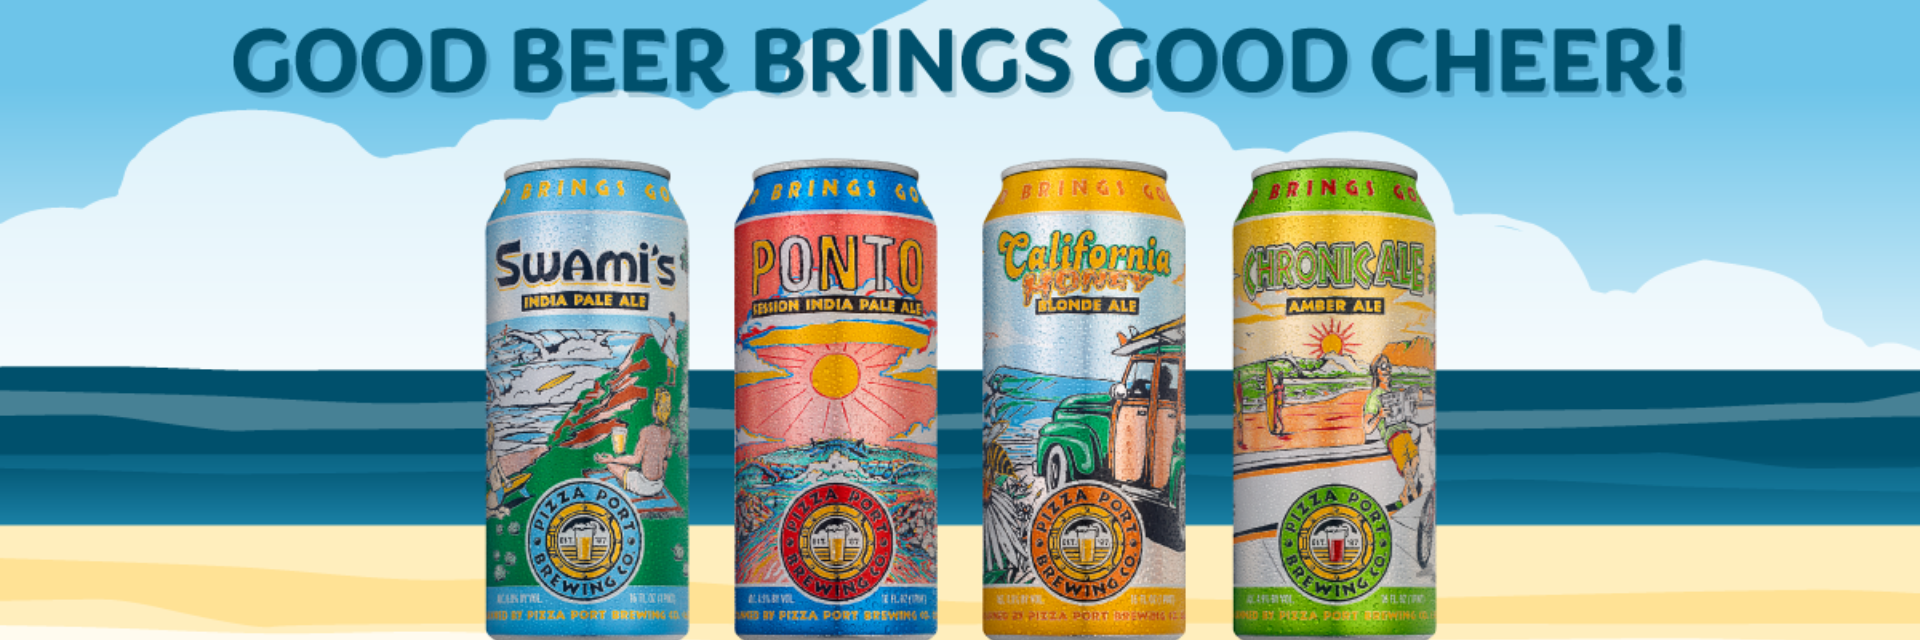 Pizza Port Brewing Co. Introduces New Look to Distributed Core Brands